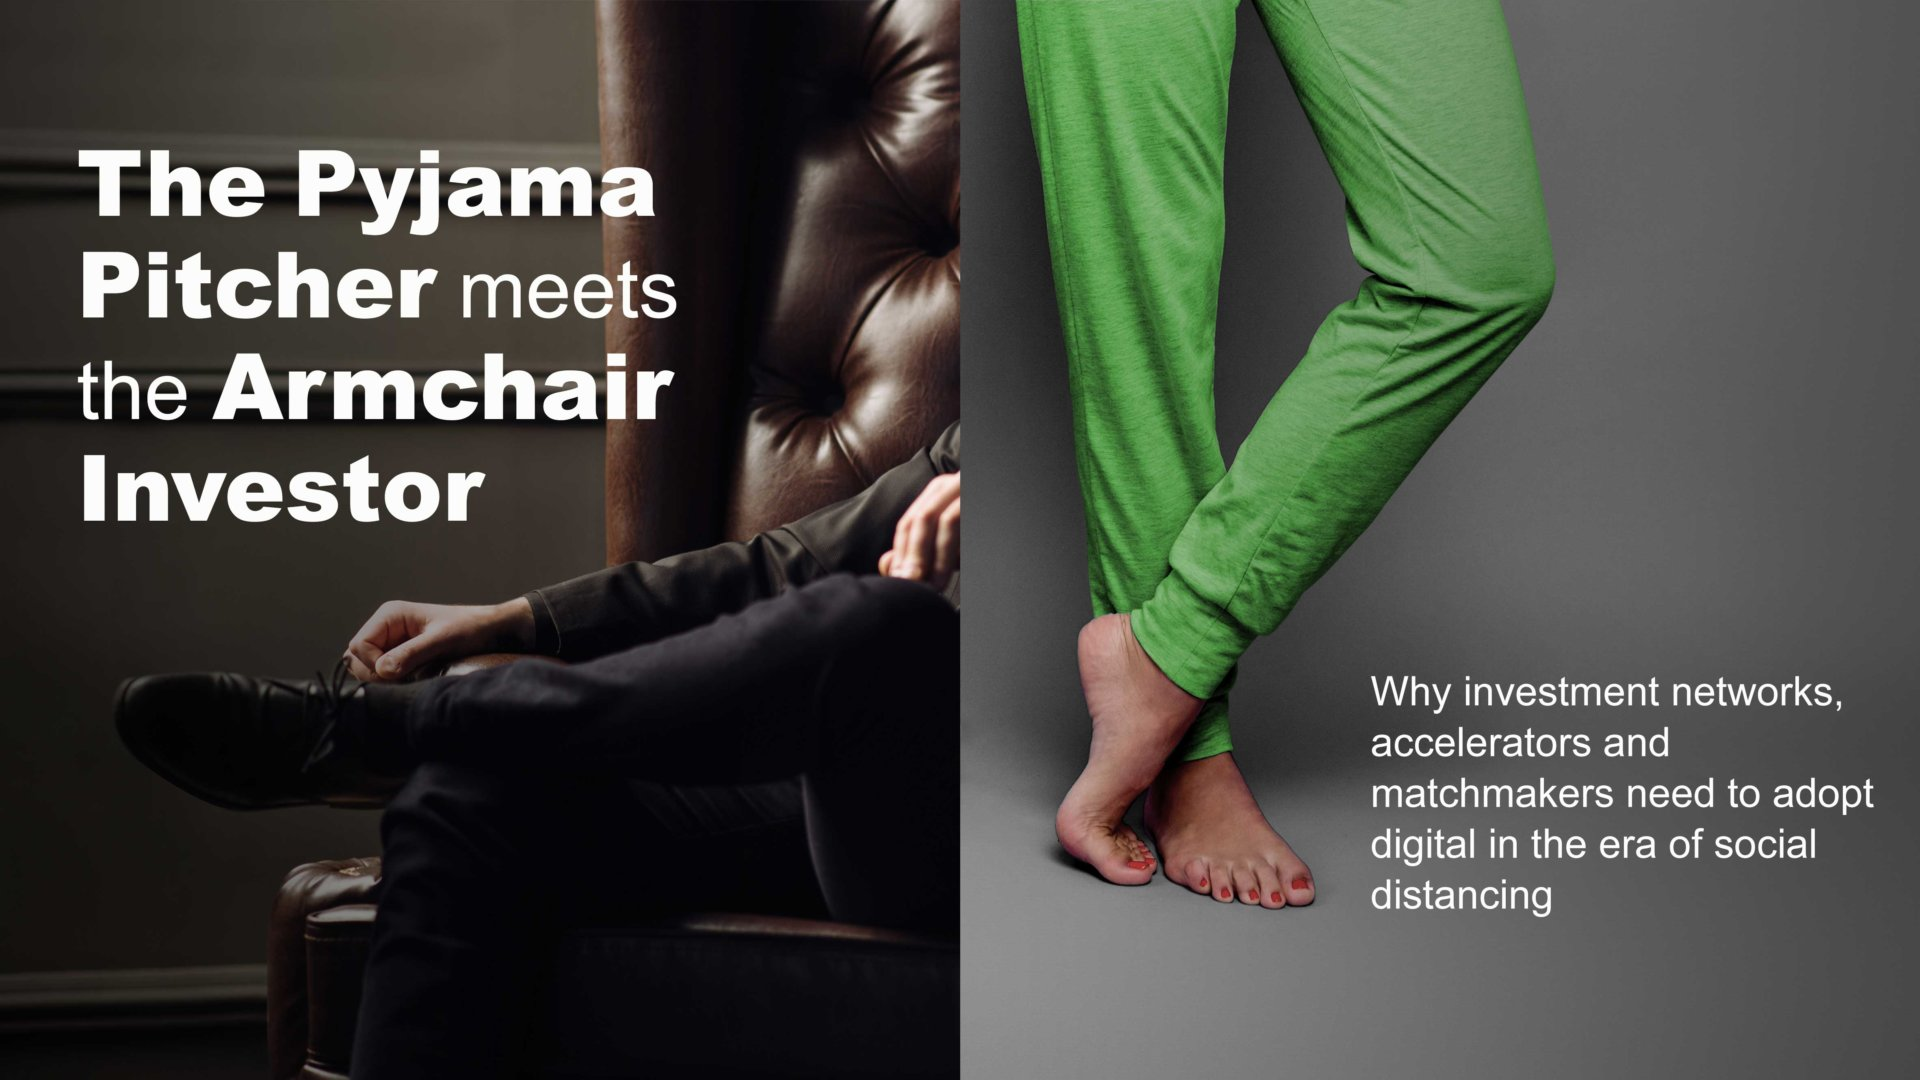 Pyjama PItcher Meets Armchair Investor